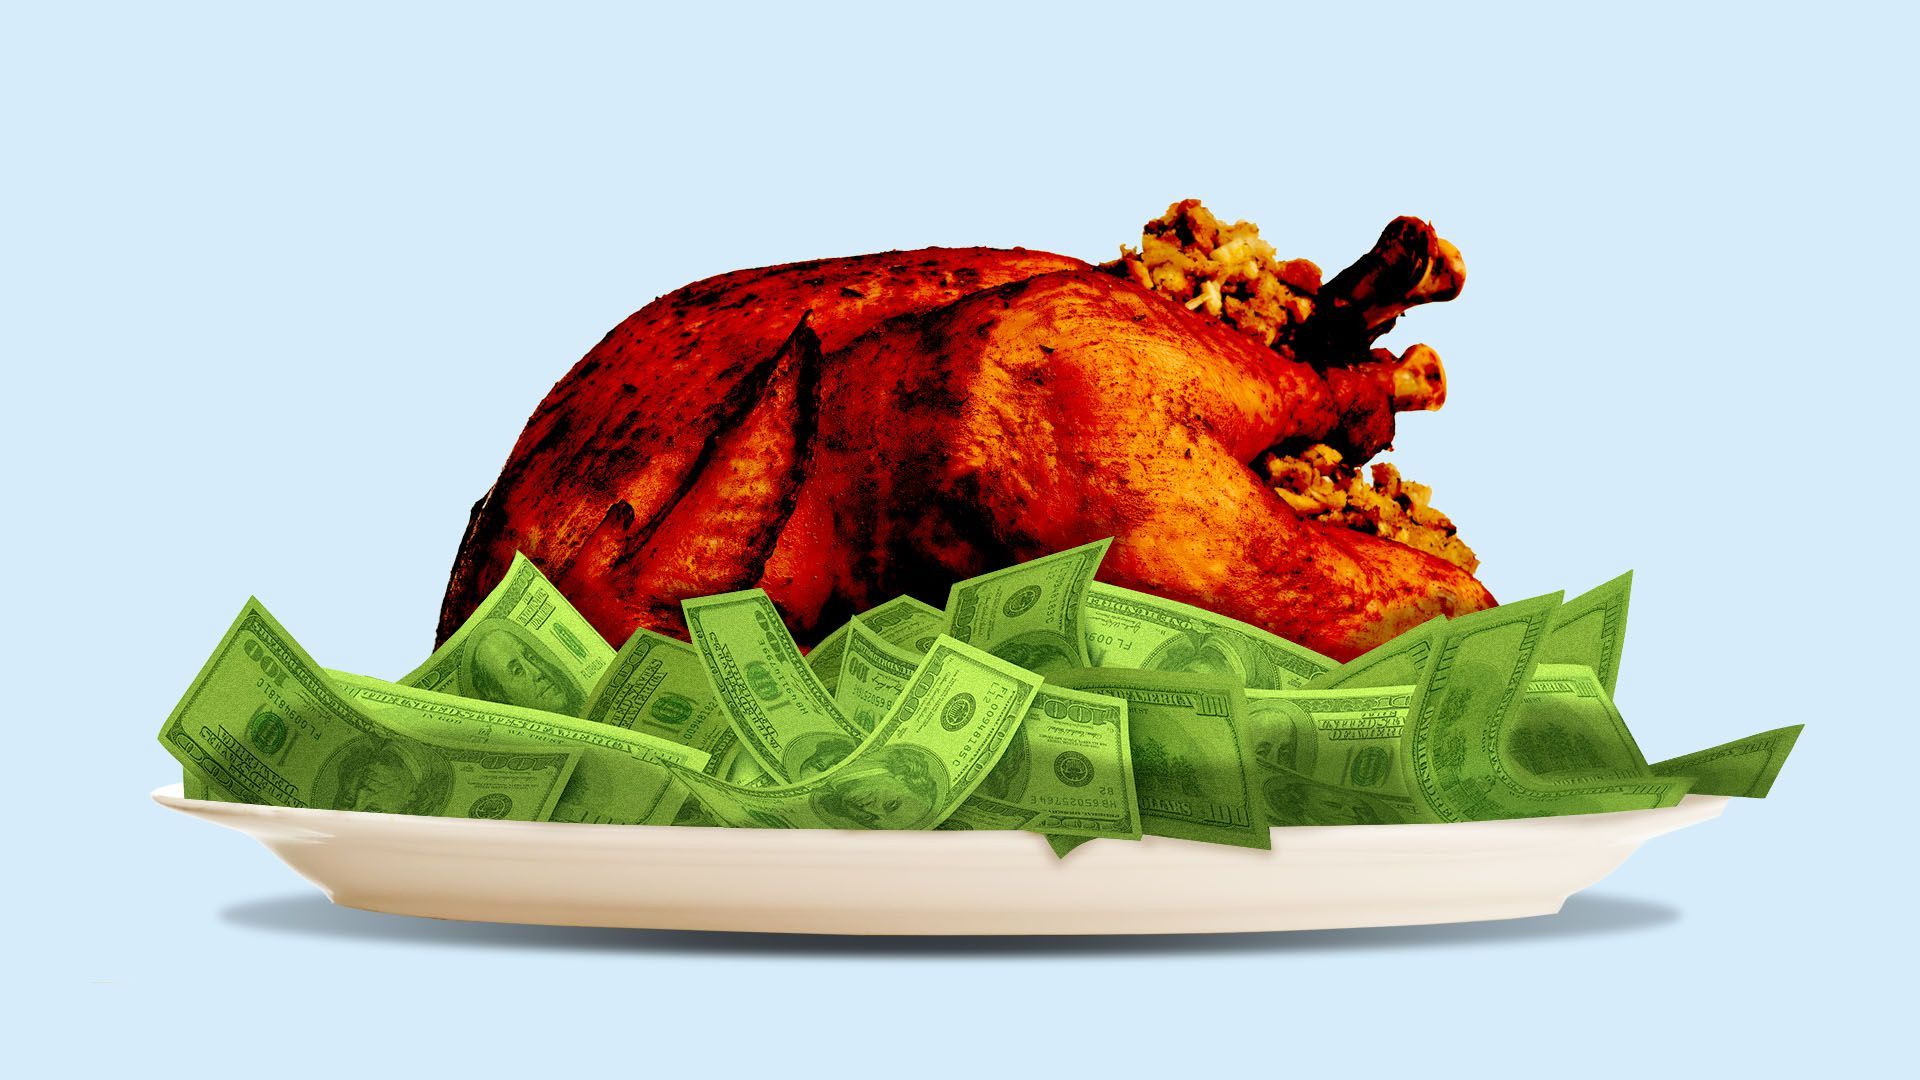 The economics of a Thanksgiving meal